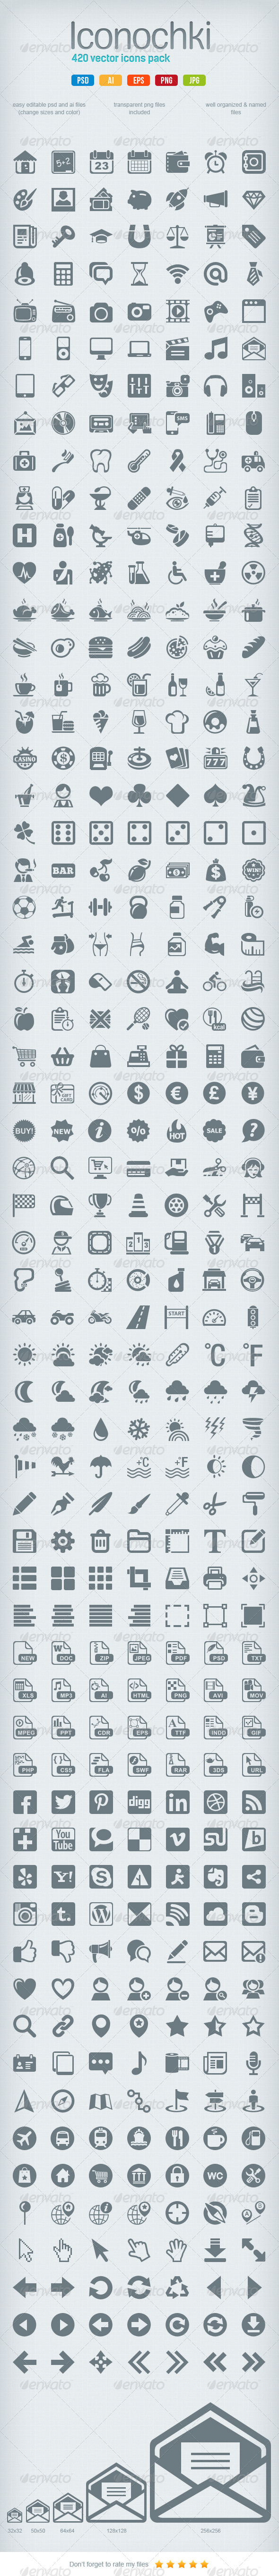 GraphicRiver Iconochki set 4288197